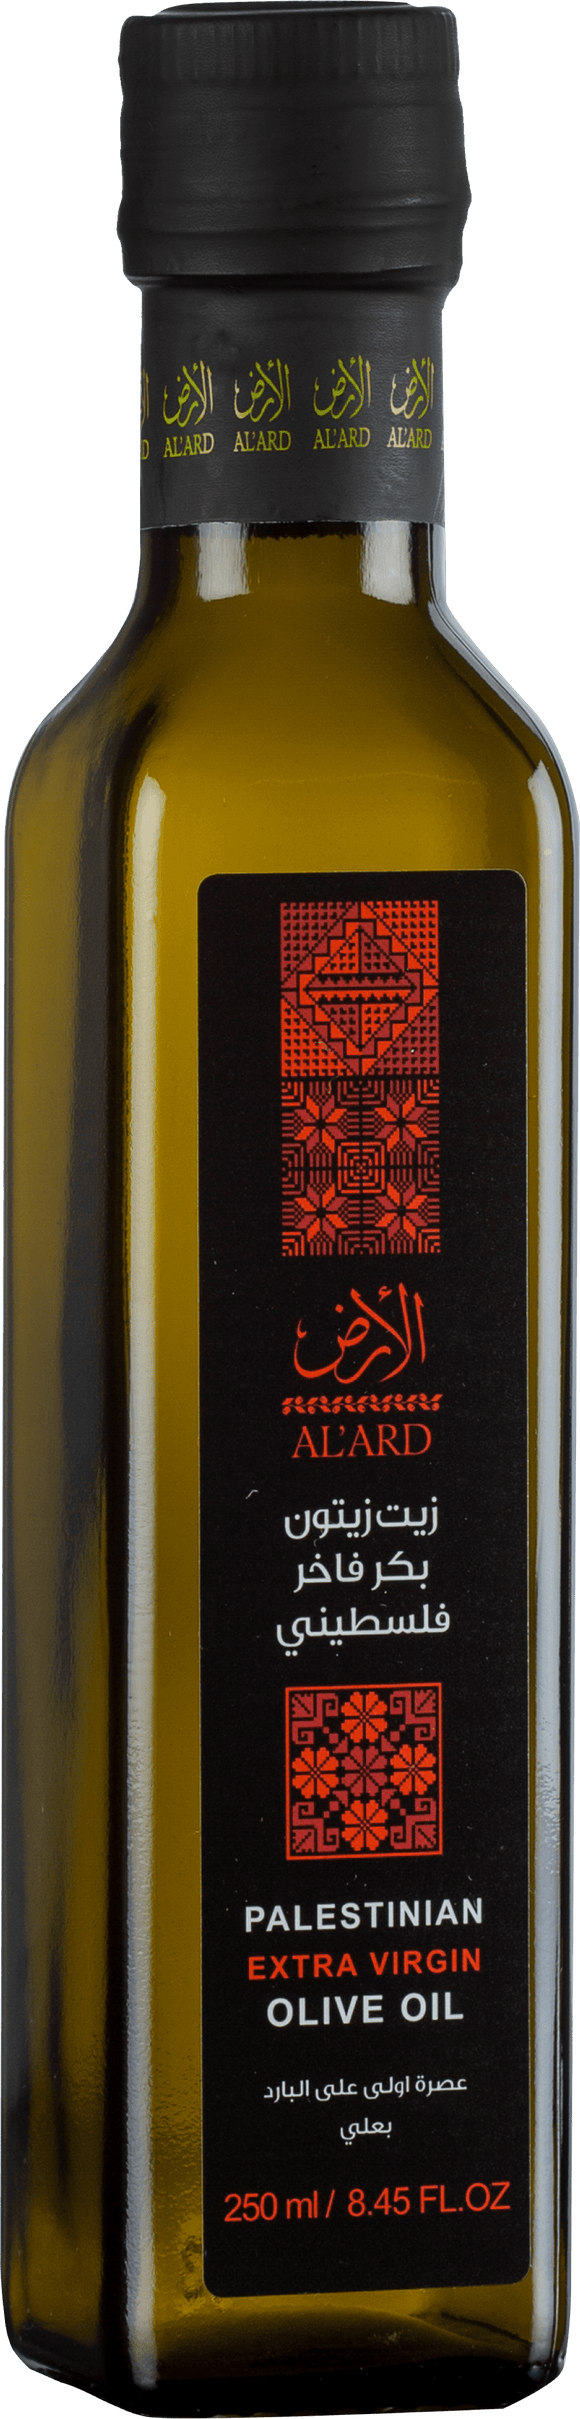 Extra Virgin Olive Oil - 250ml/8.45 FL.OZ - Al'ard USA